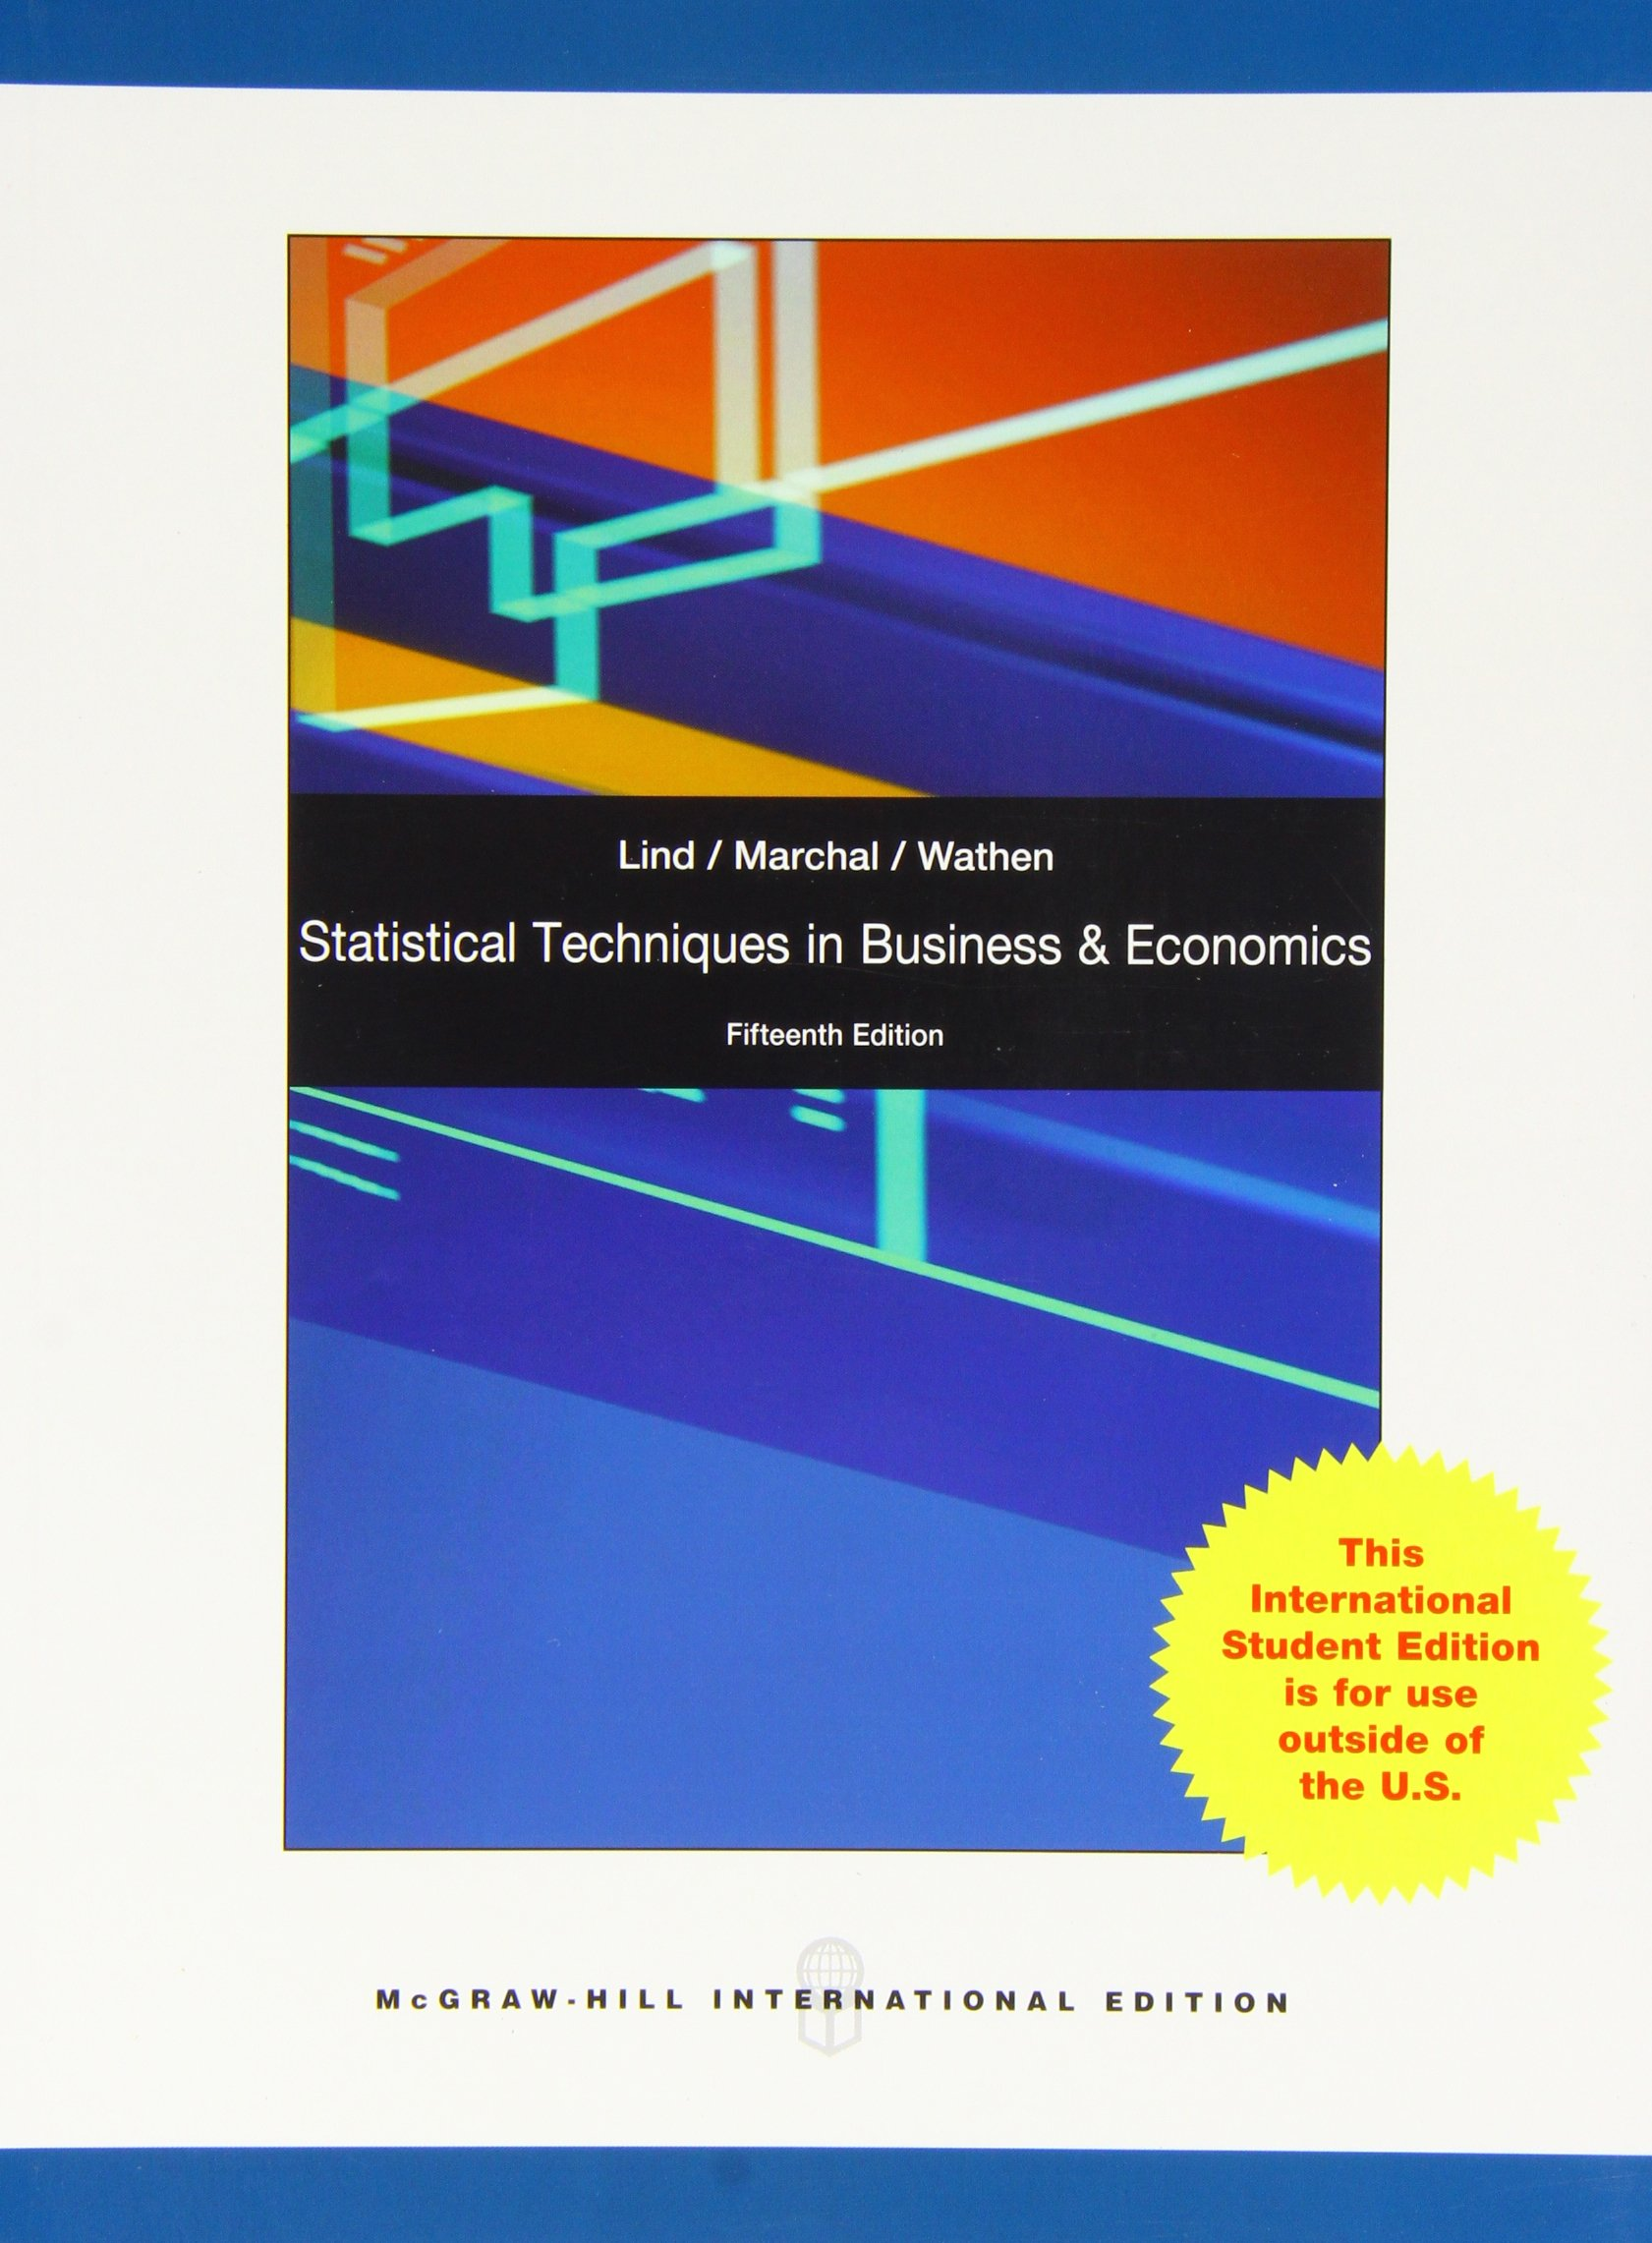 Statistical techniques in business and economics with connect plus online access douglas a lind william g marchal samuel adam wathen 9780077132668